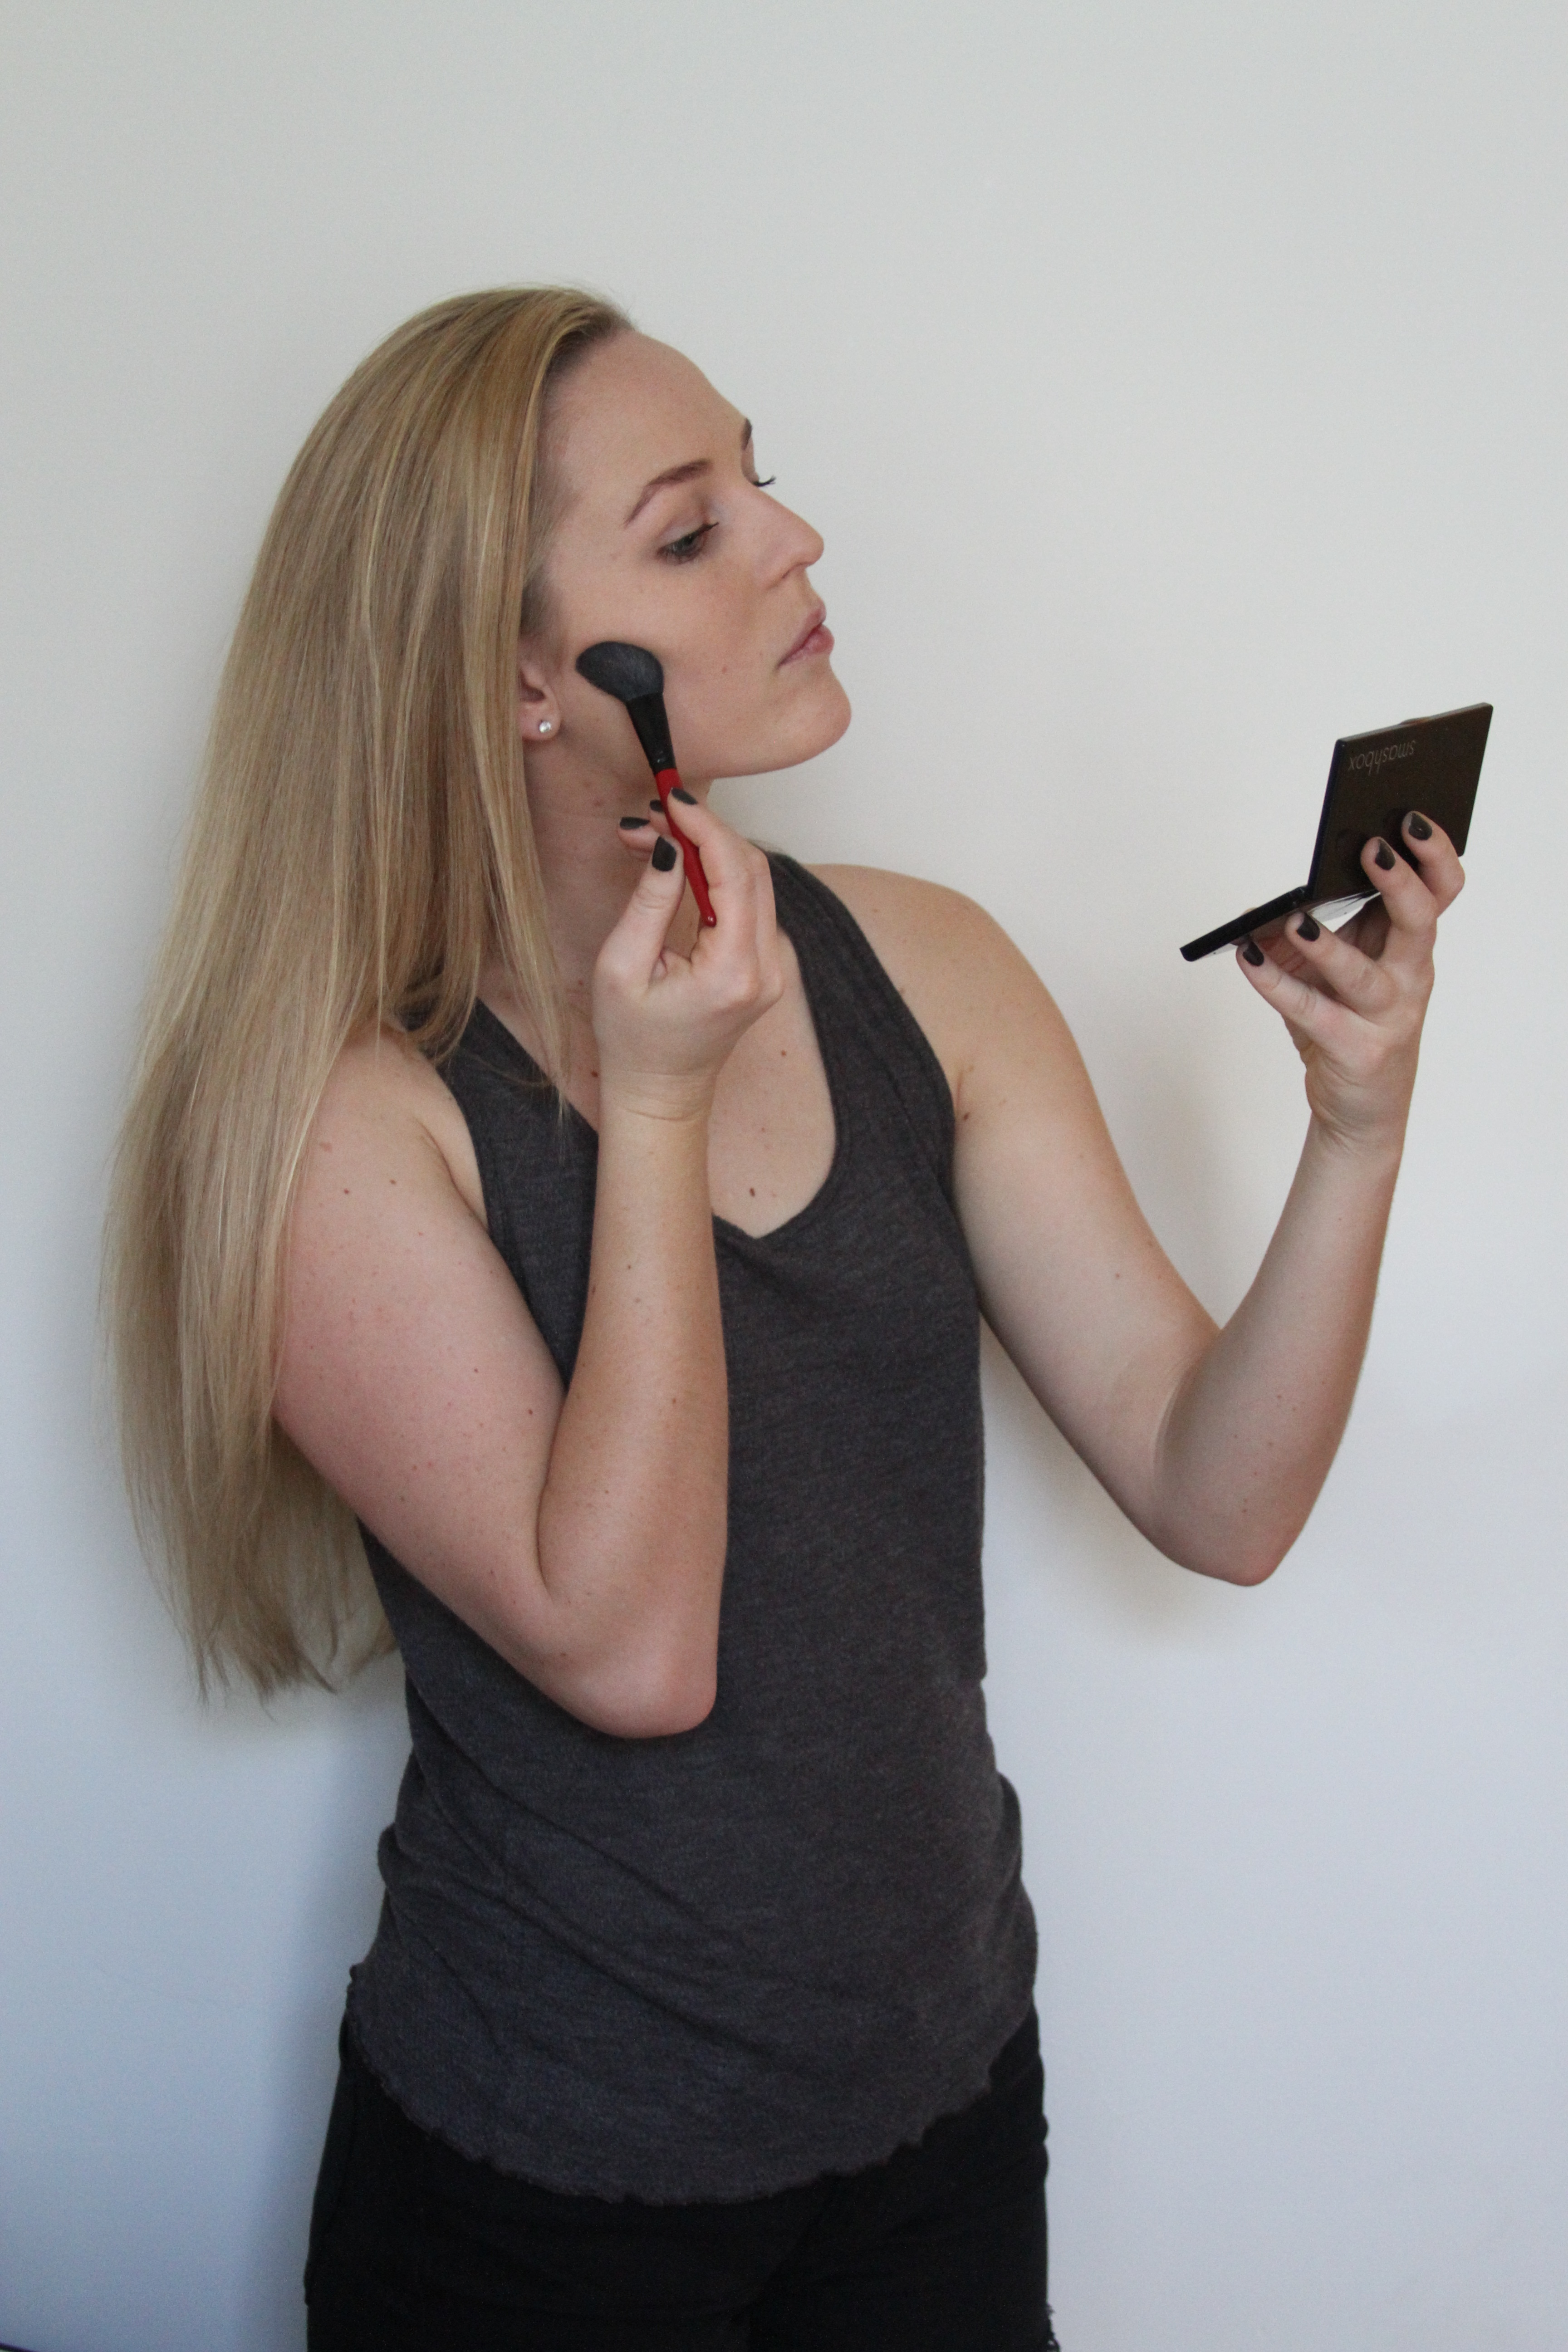 Step 5: Now Your Canvas Is Ready To Contour If You Have A Contouring Kit,  Now Is The Time To Use It, But Sometimes I Just Use Bronzer If I Am In